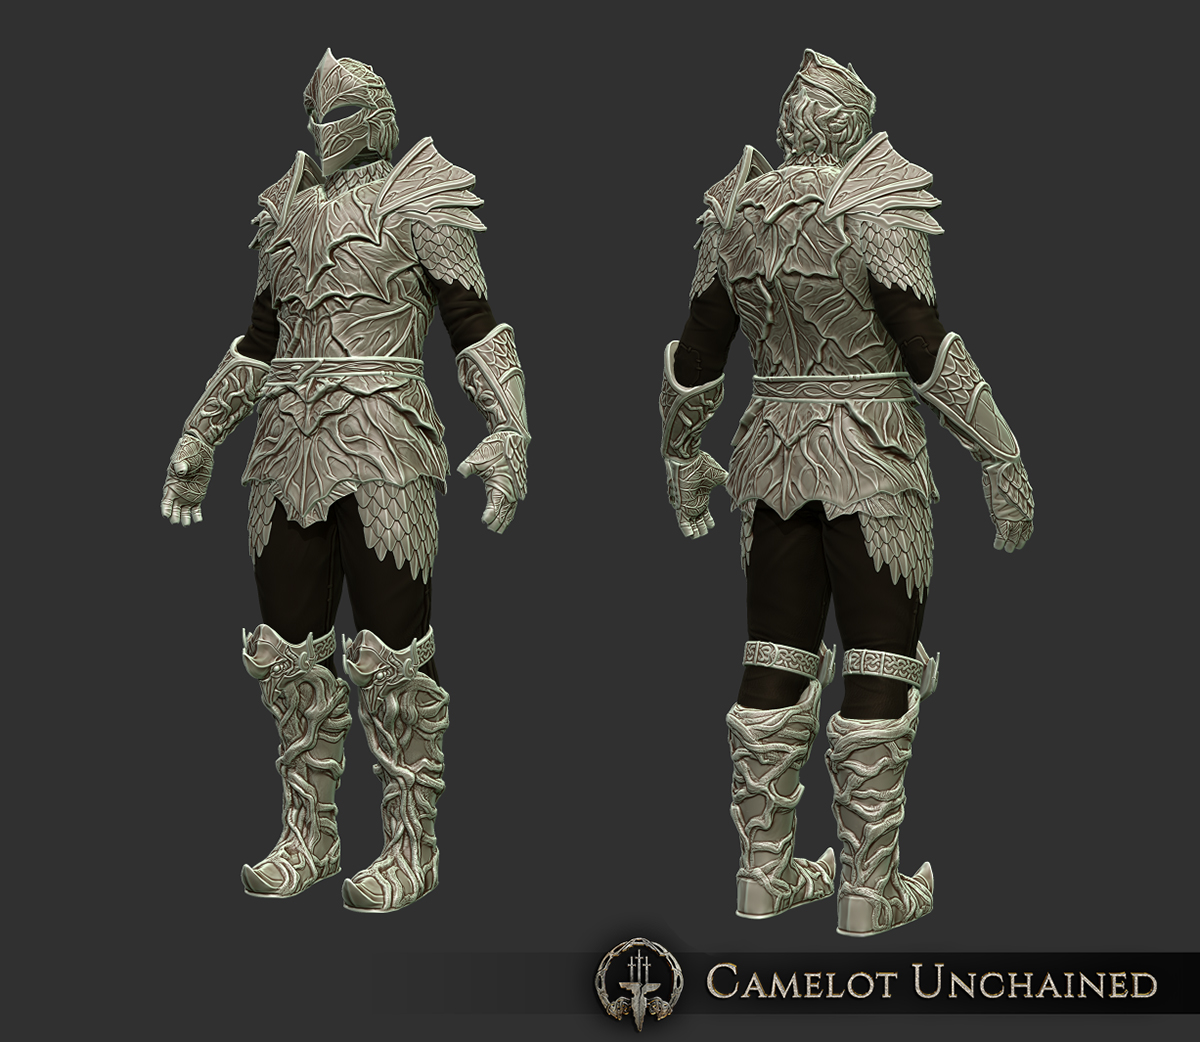 78cb4 Camelot Unchained tuatha medium 1200 Evening Update – Friday, February 26th, 2016